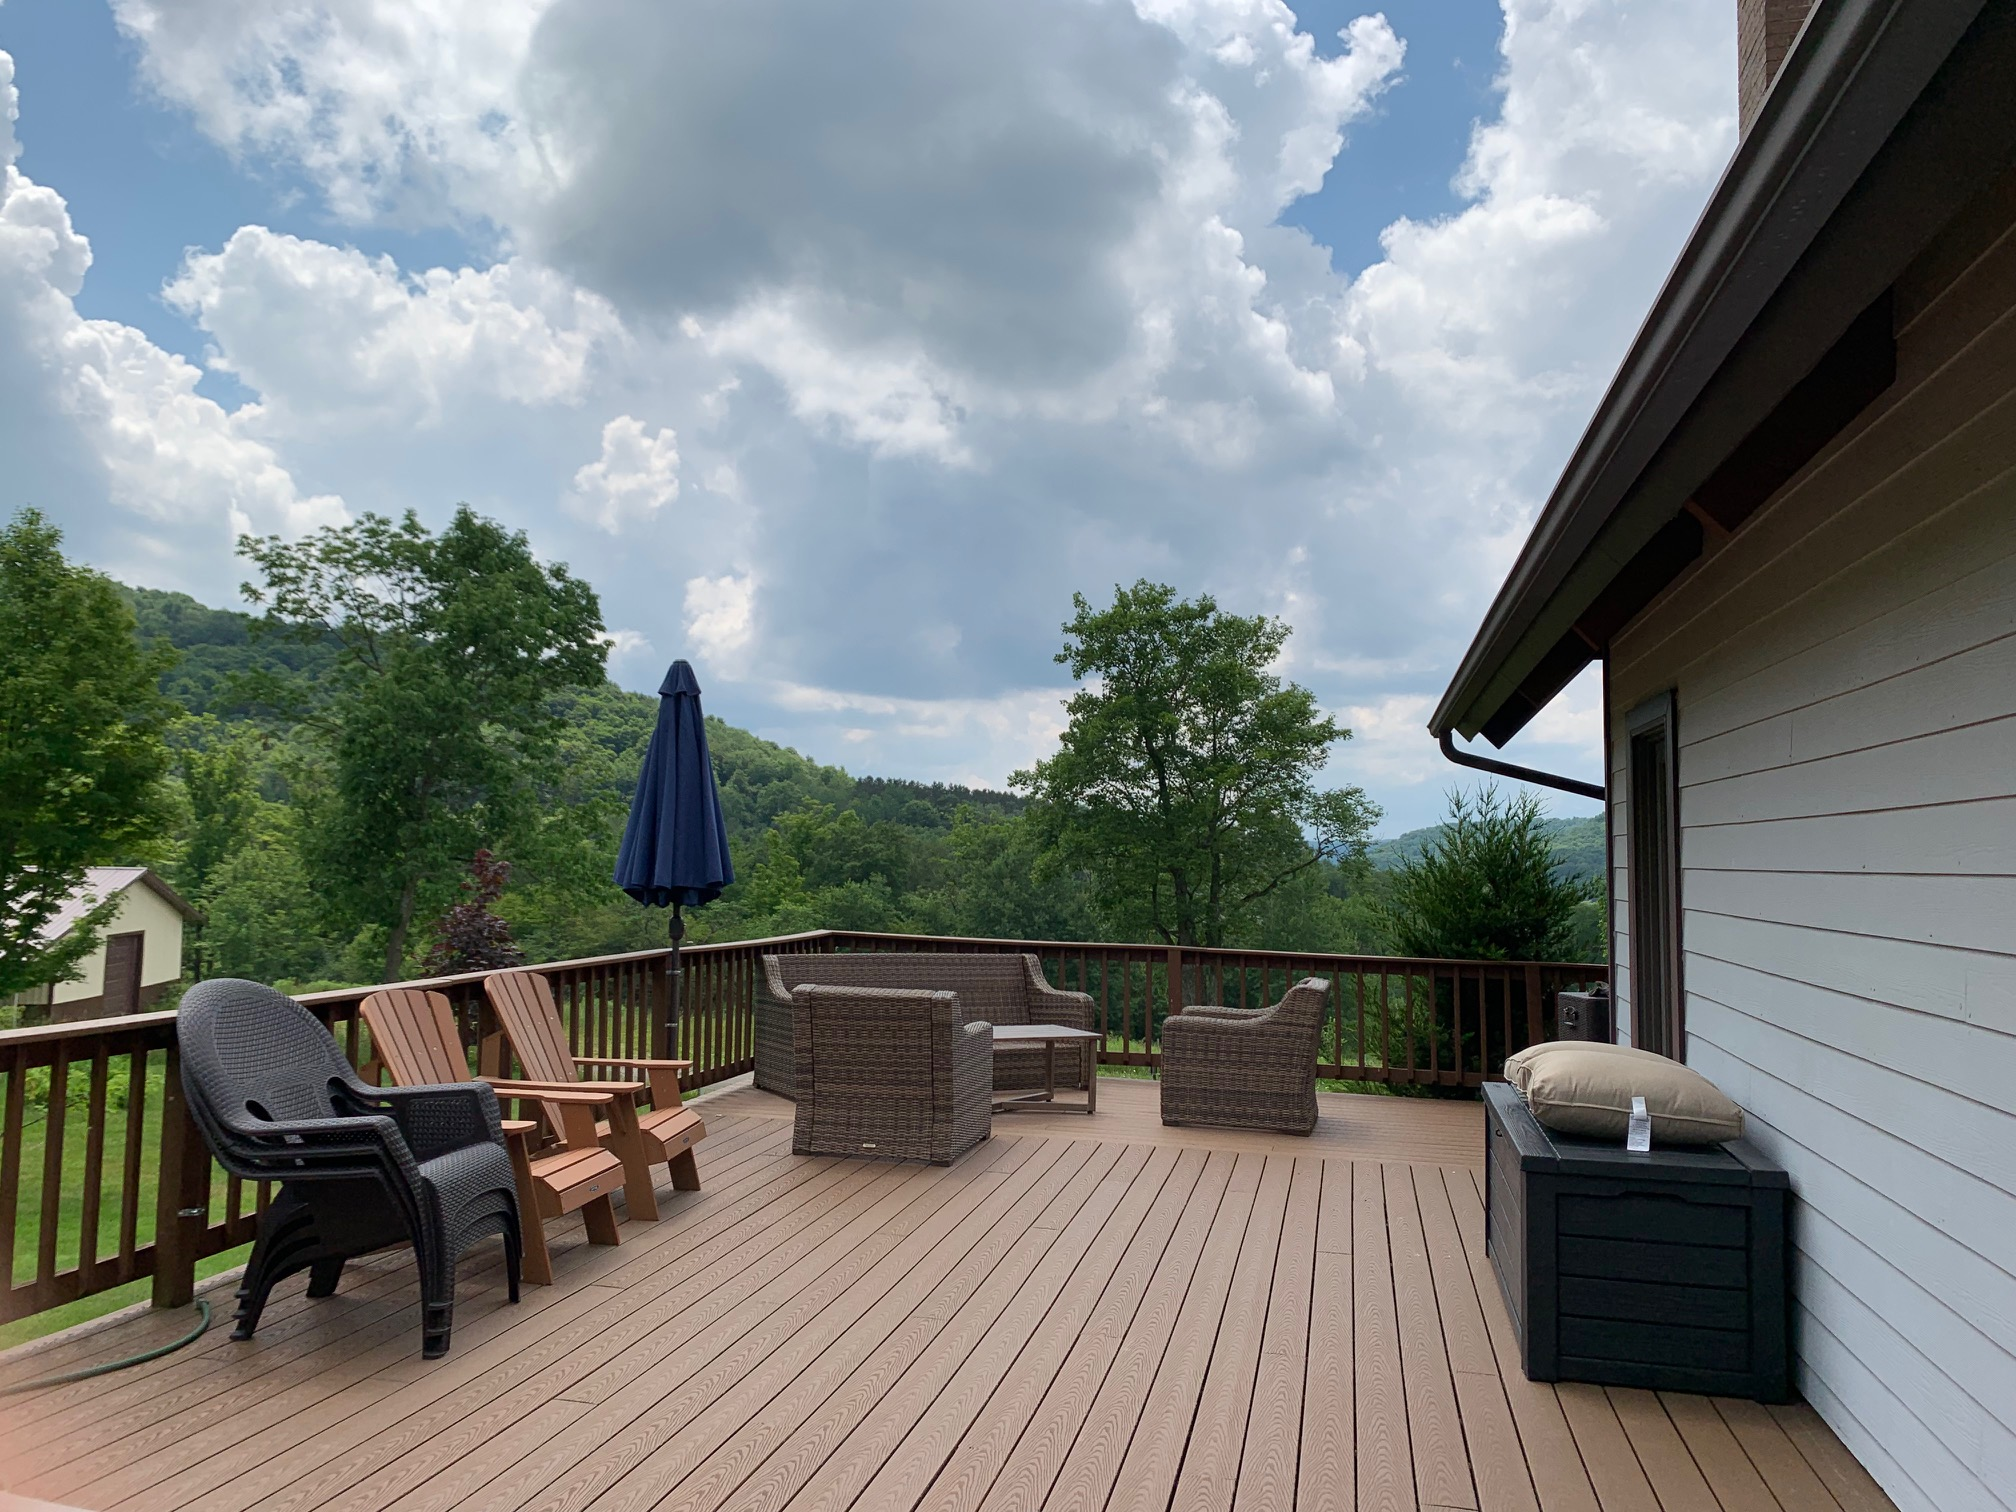 Views on this expansive deck